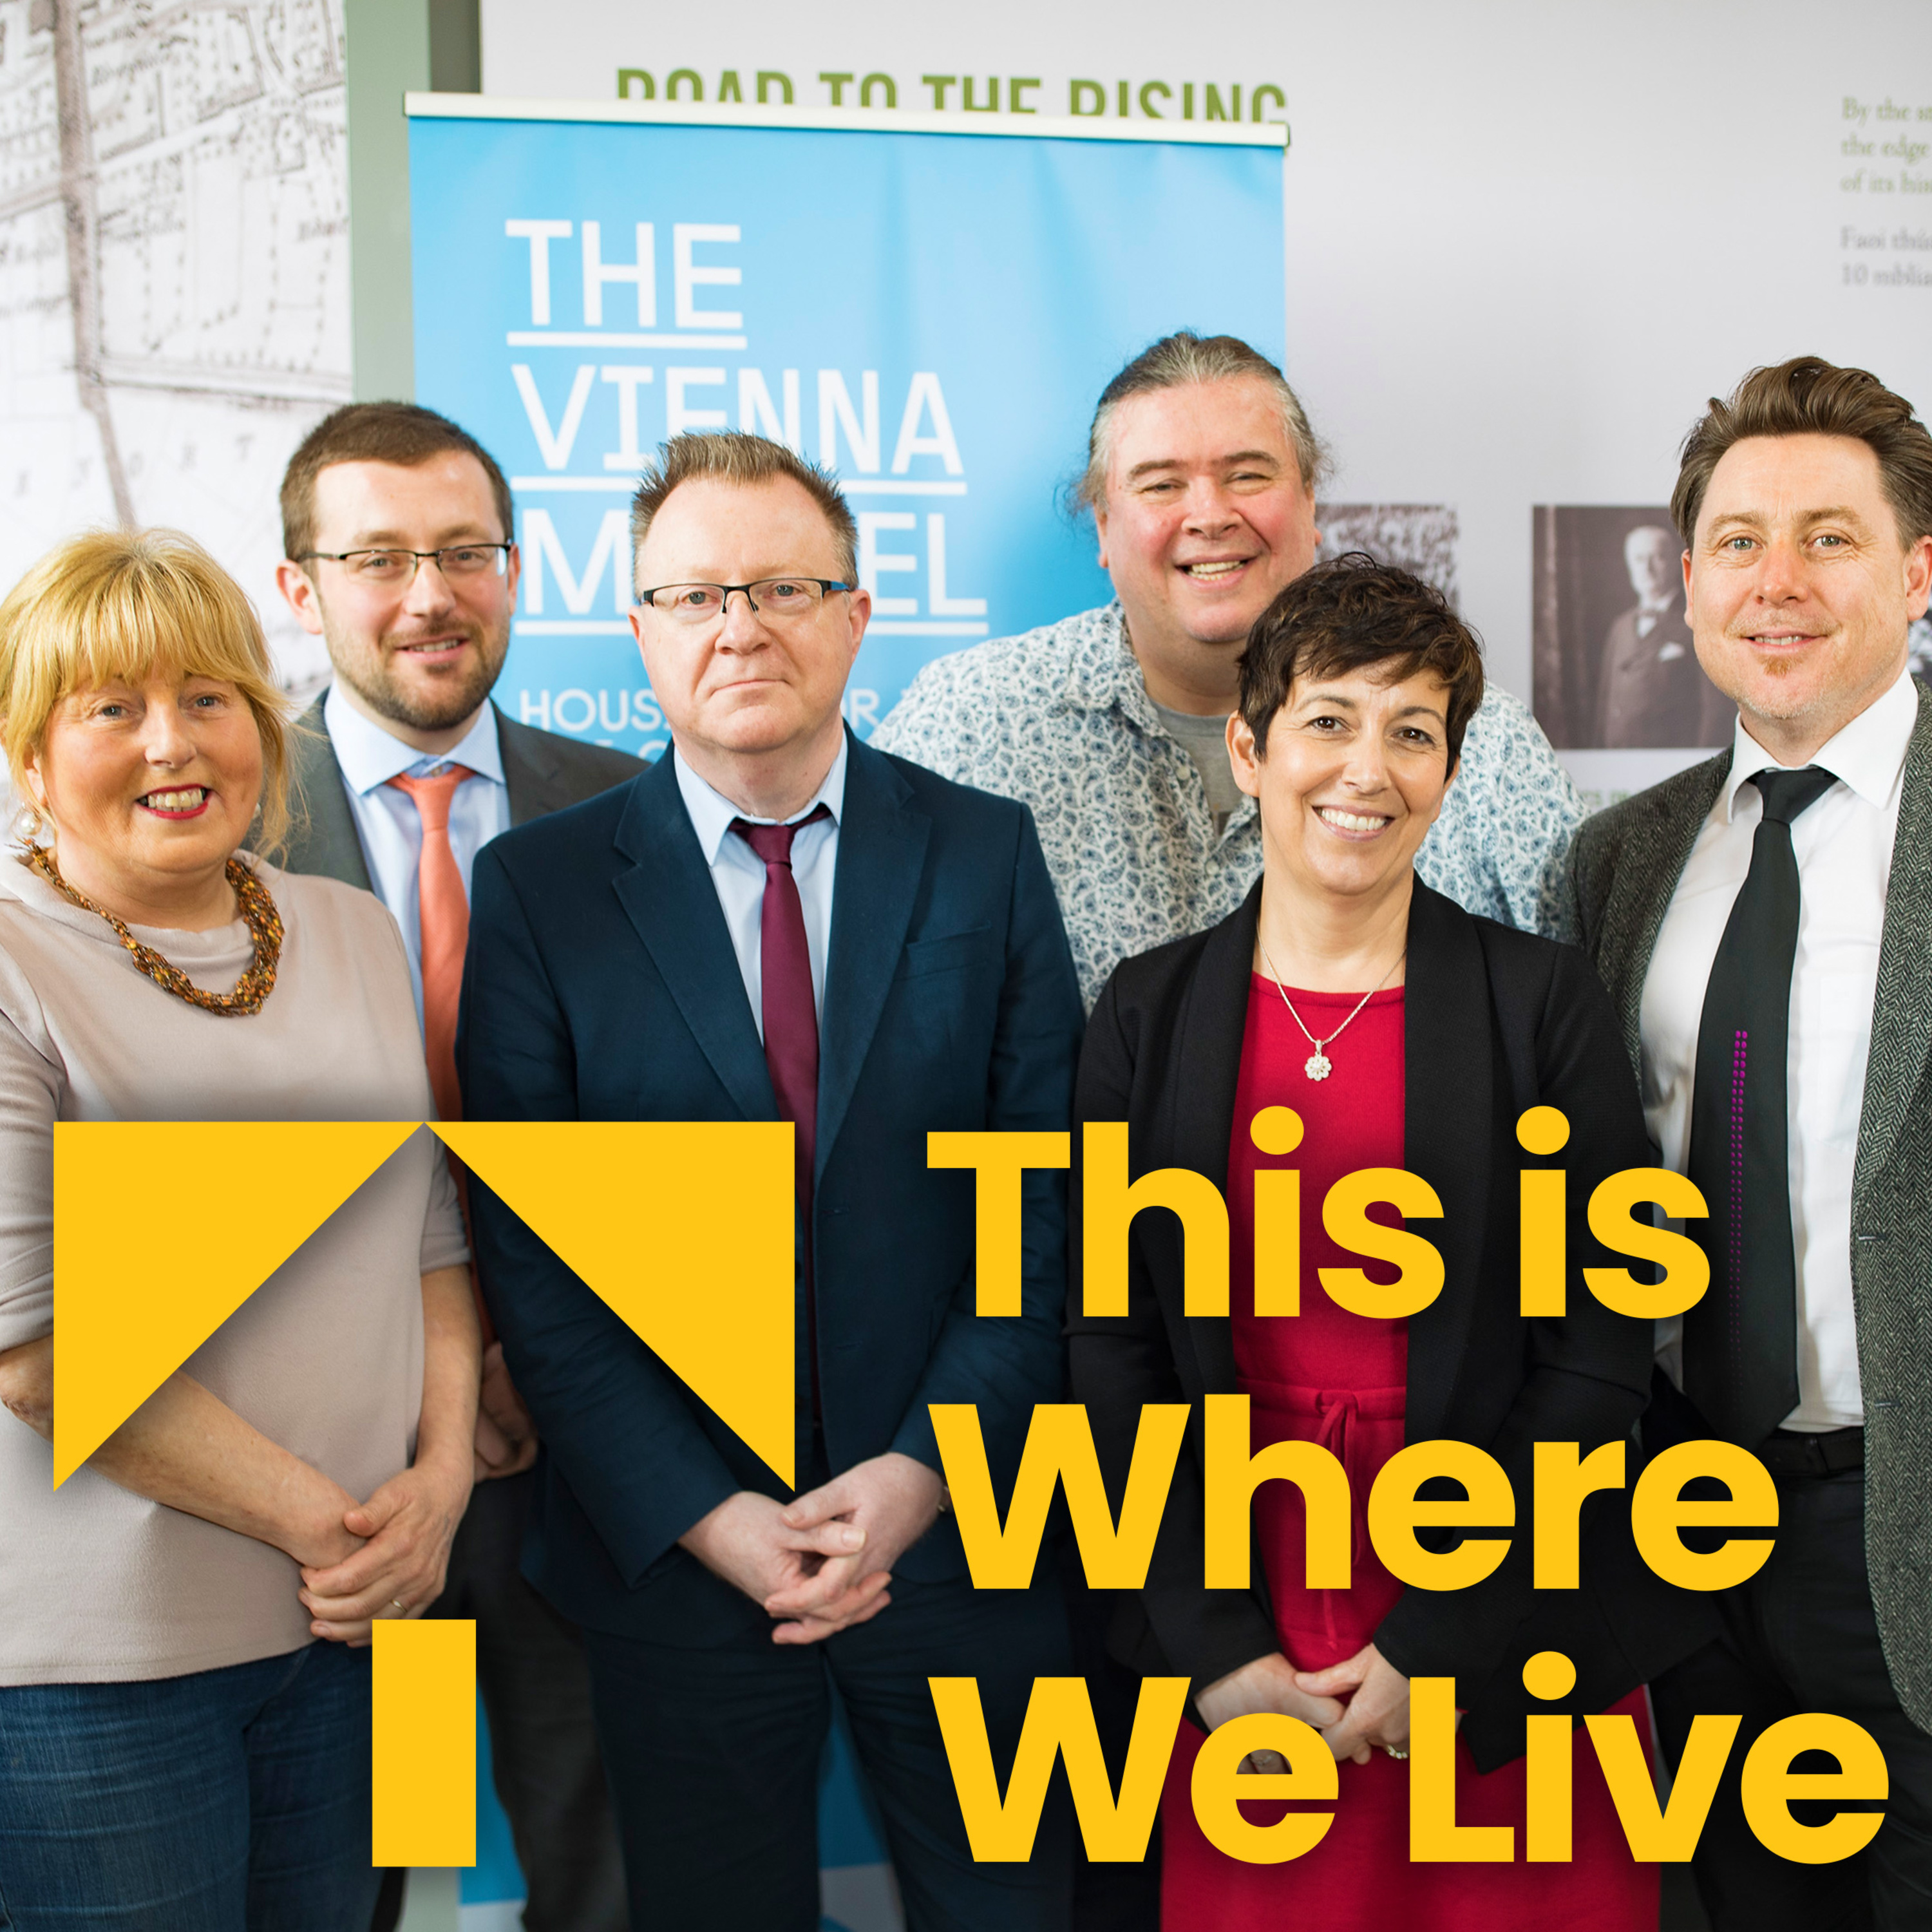 The Vienna Model : Housing for the 21st Century. Visions for the Future. Podcast 4